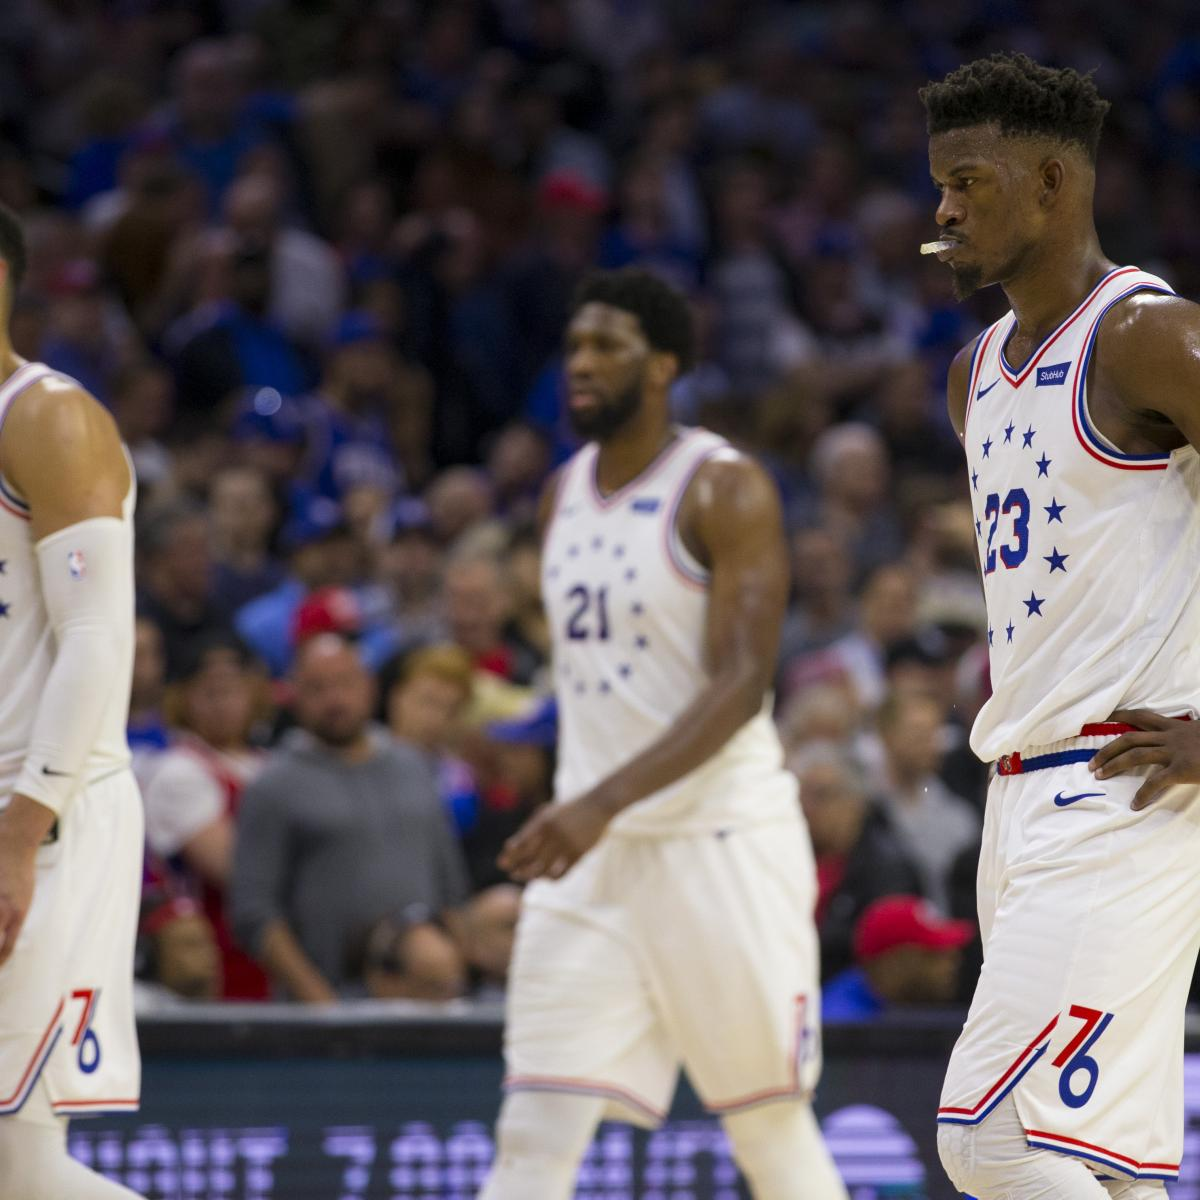 After a quiet night from Joel Embiid, his Philadelphia 76ers teammates want to see more from the All-Star center...